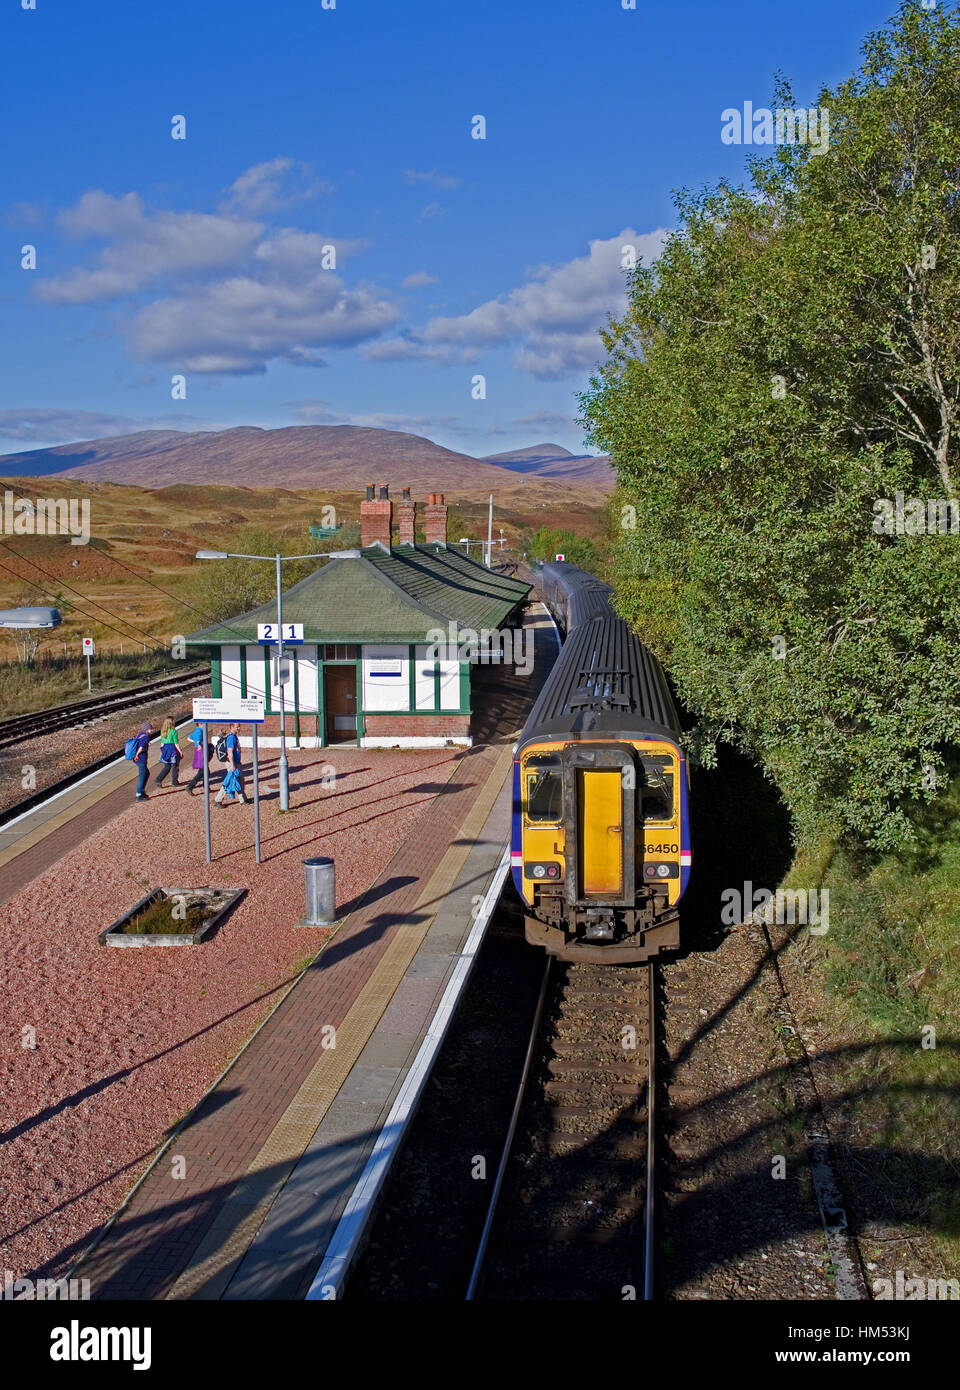 A northbound train waiting at the platform of Rannoch Railway Station, on the edge of Rannoch Moor, on a sunny autumn - Stock Image